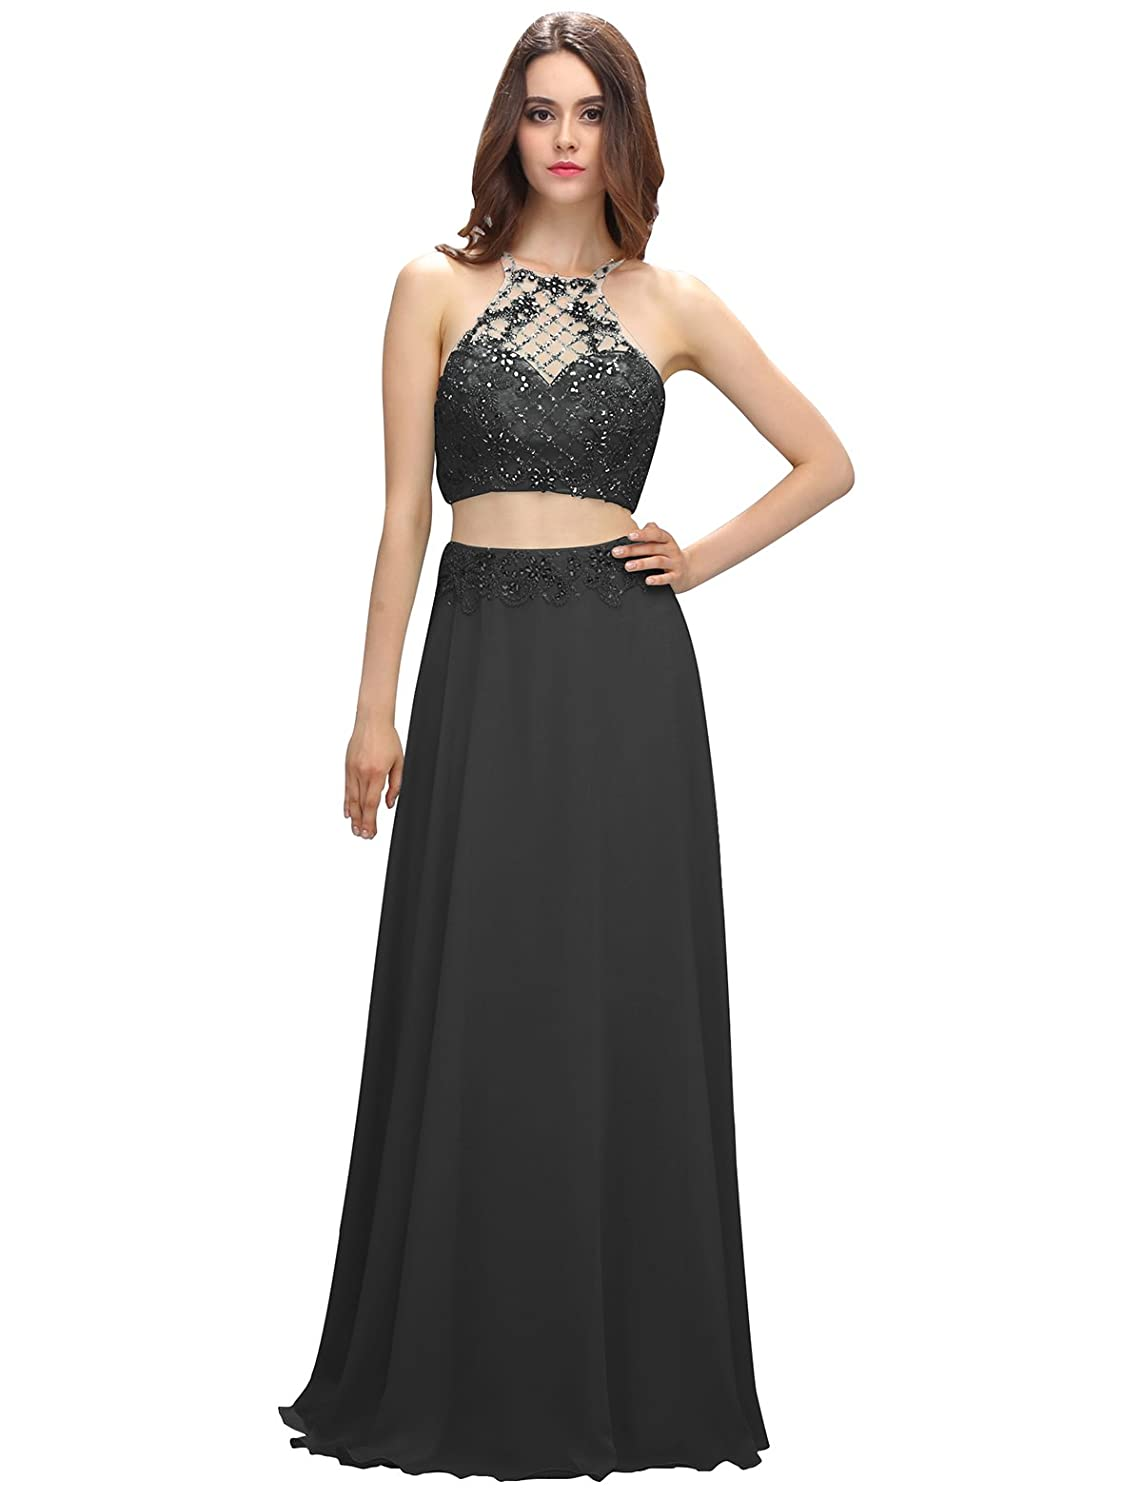 Dressystar Floor Length Two Piece Prom Dresses Chiffon Beading Evening Gowns